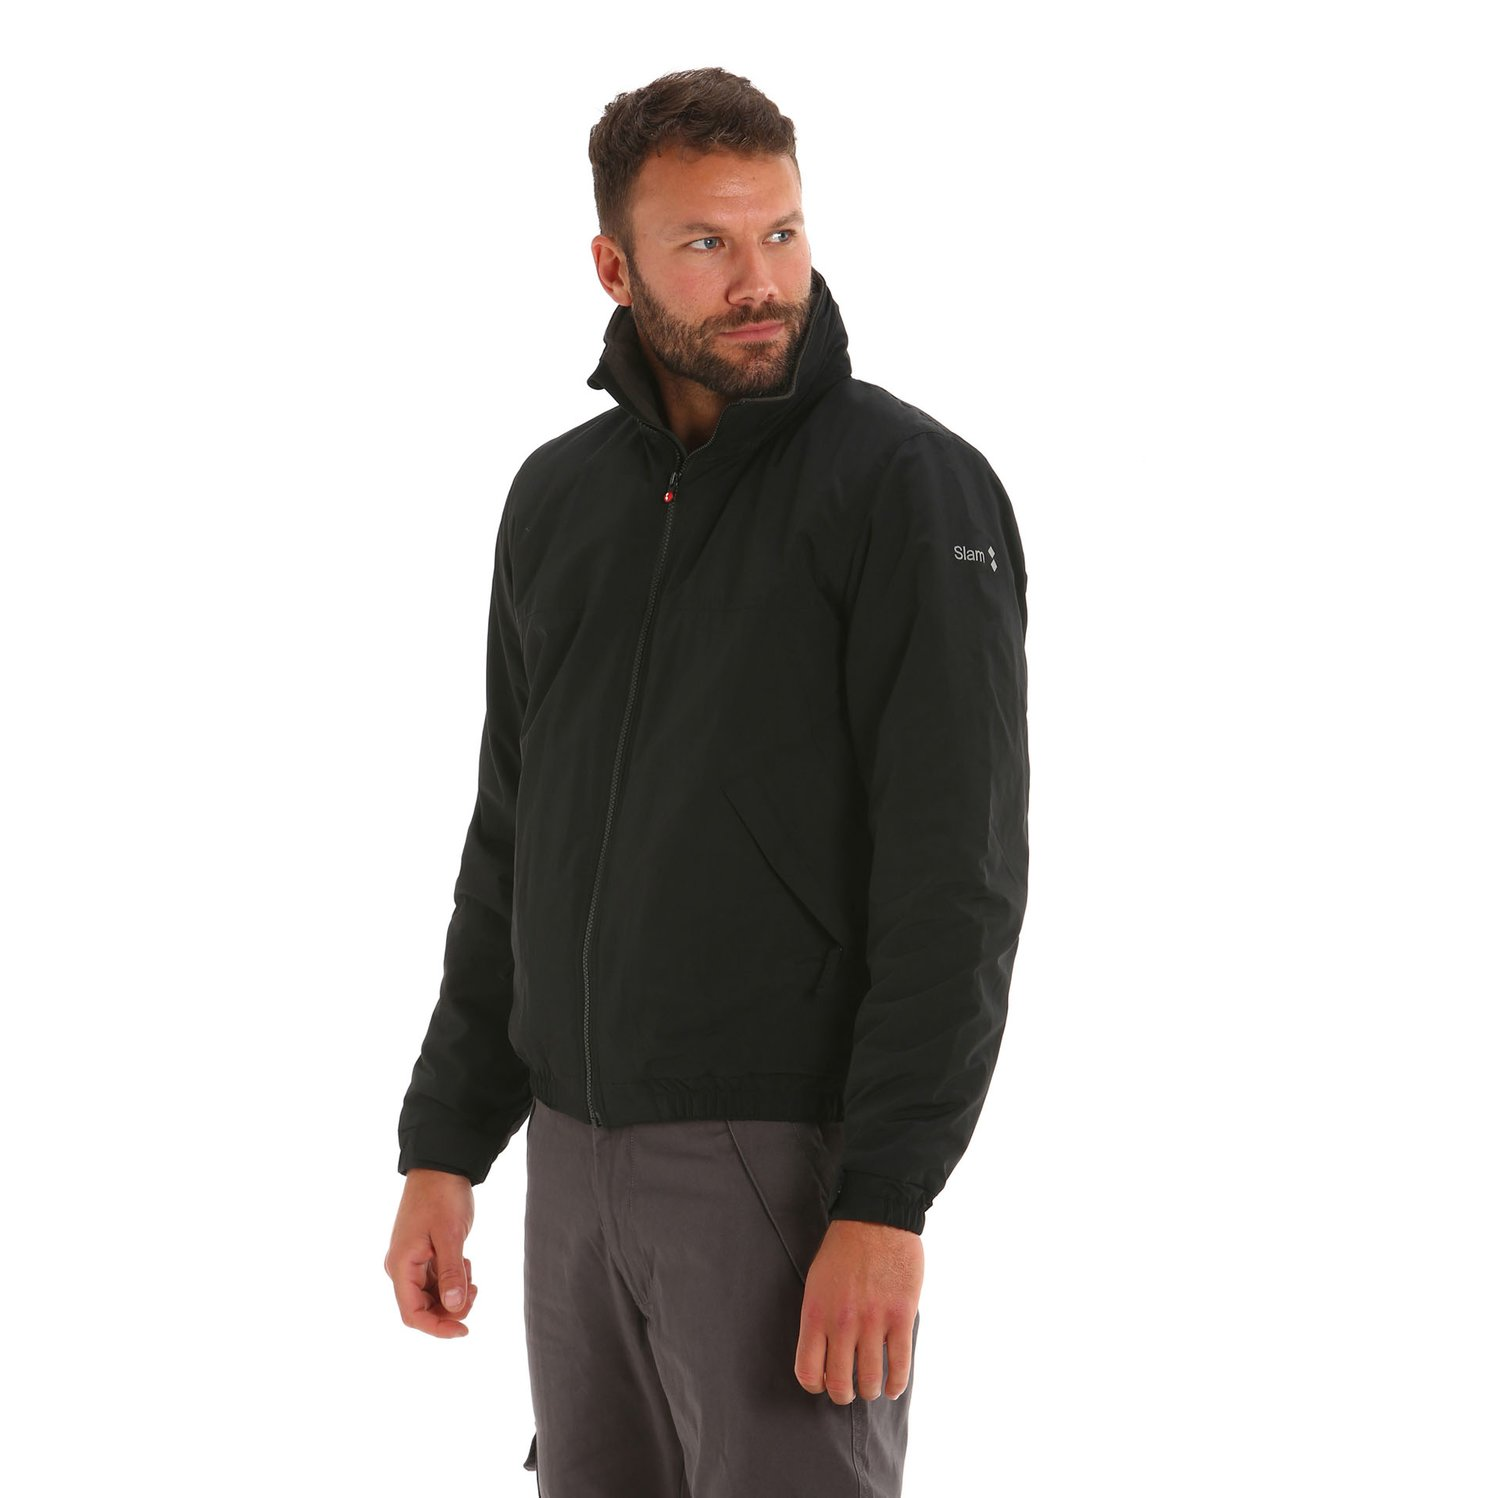 Sailing Winter jacket 2.1 - Black